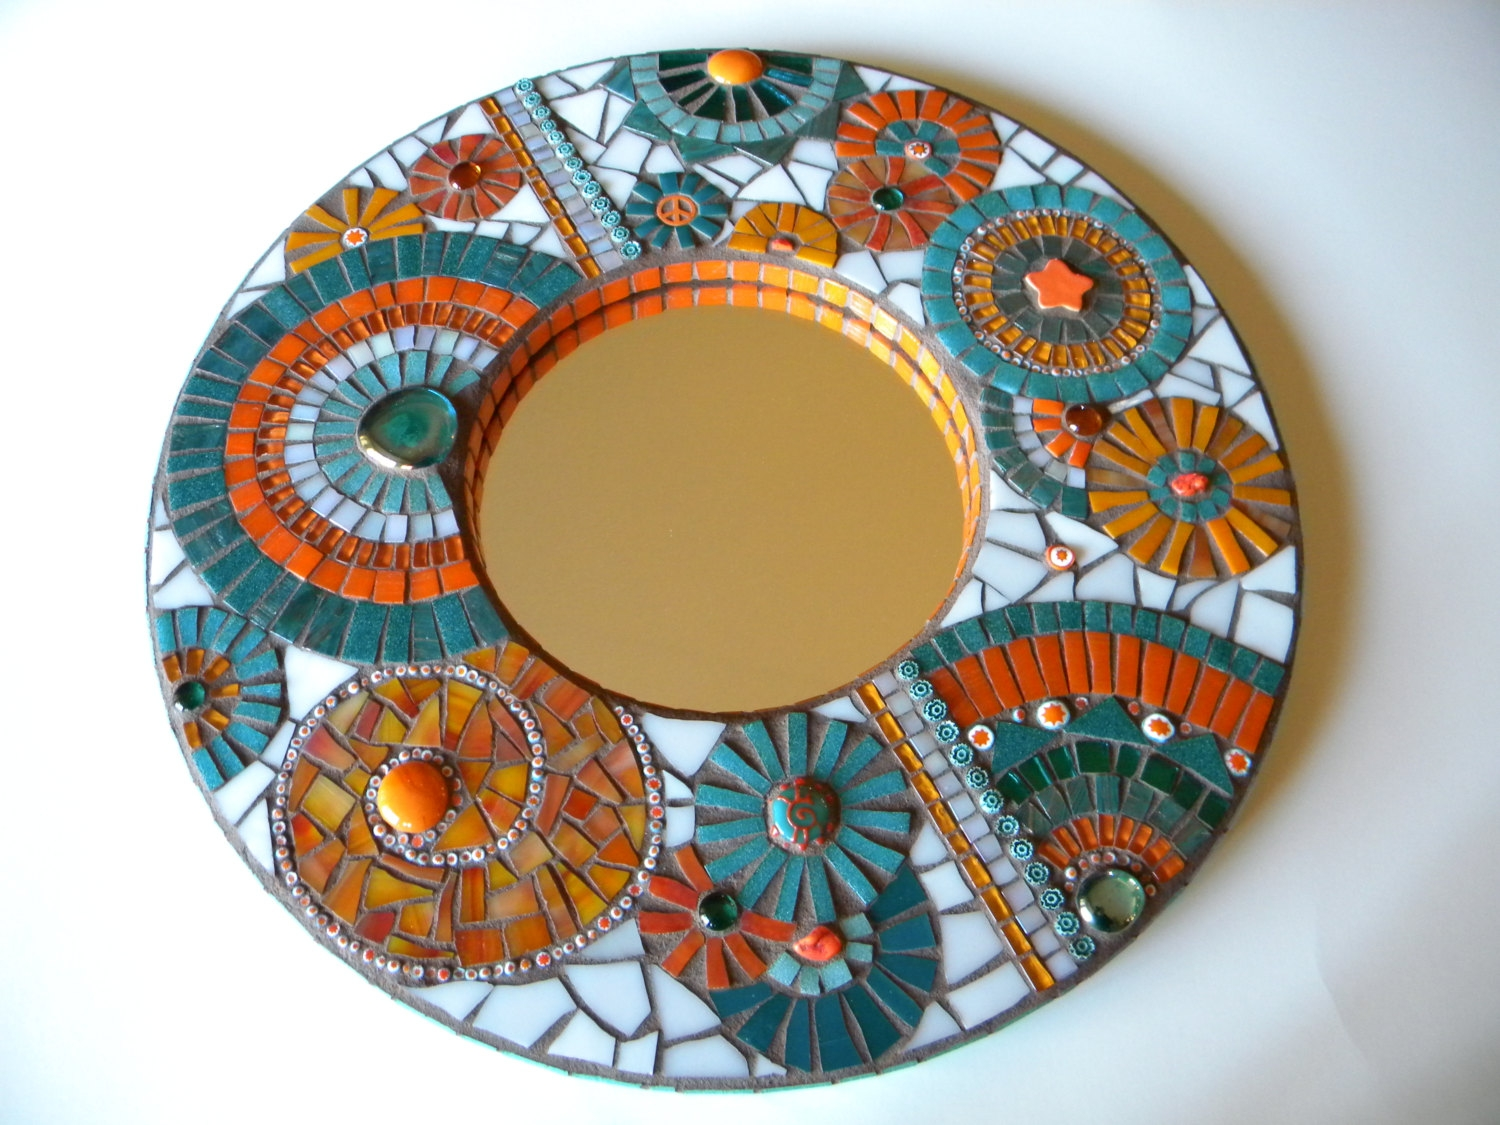 Mosaic Mirror Etsy Throughout Mosaic Mirrors For Sale (Image 10 of 15)